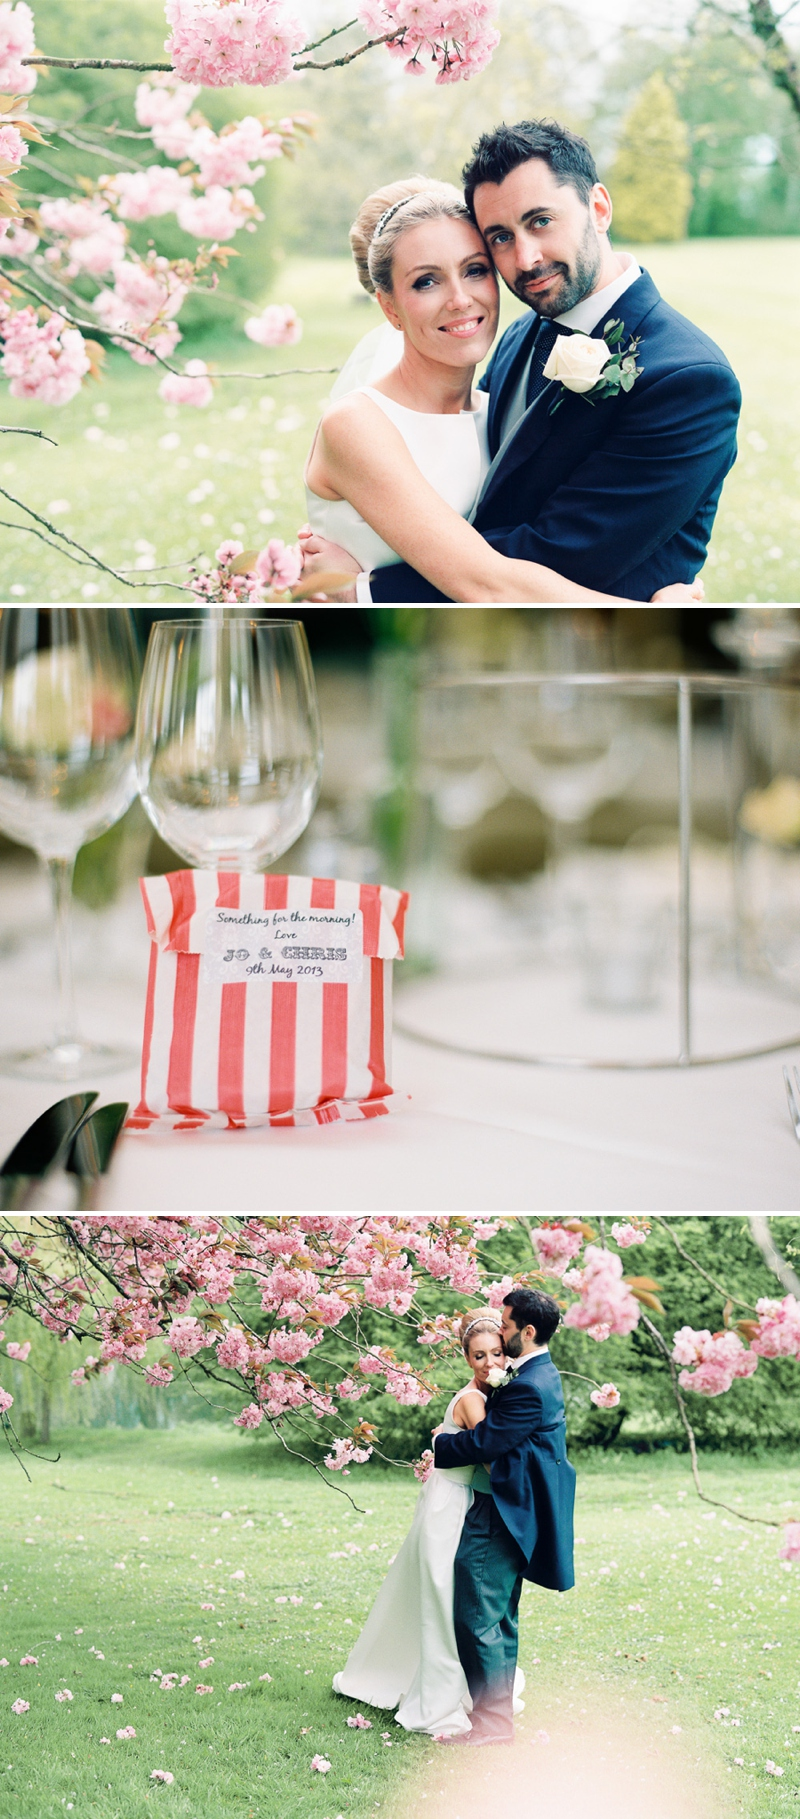 A sophisticated wedding at Babington house with Kate Spade pink shoes by Ann-Kathrin Koch_0532